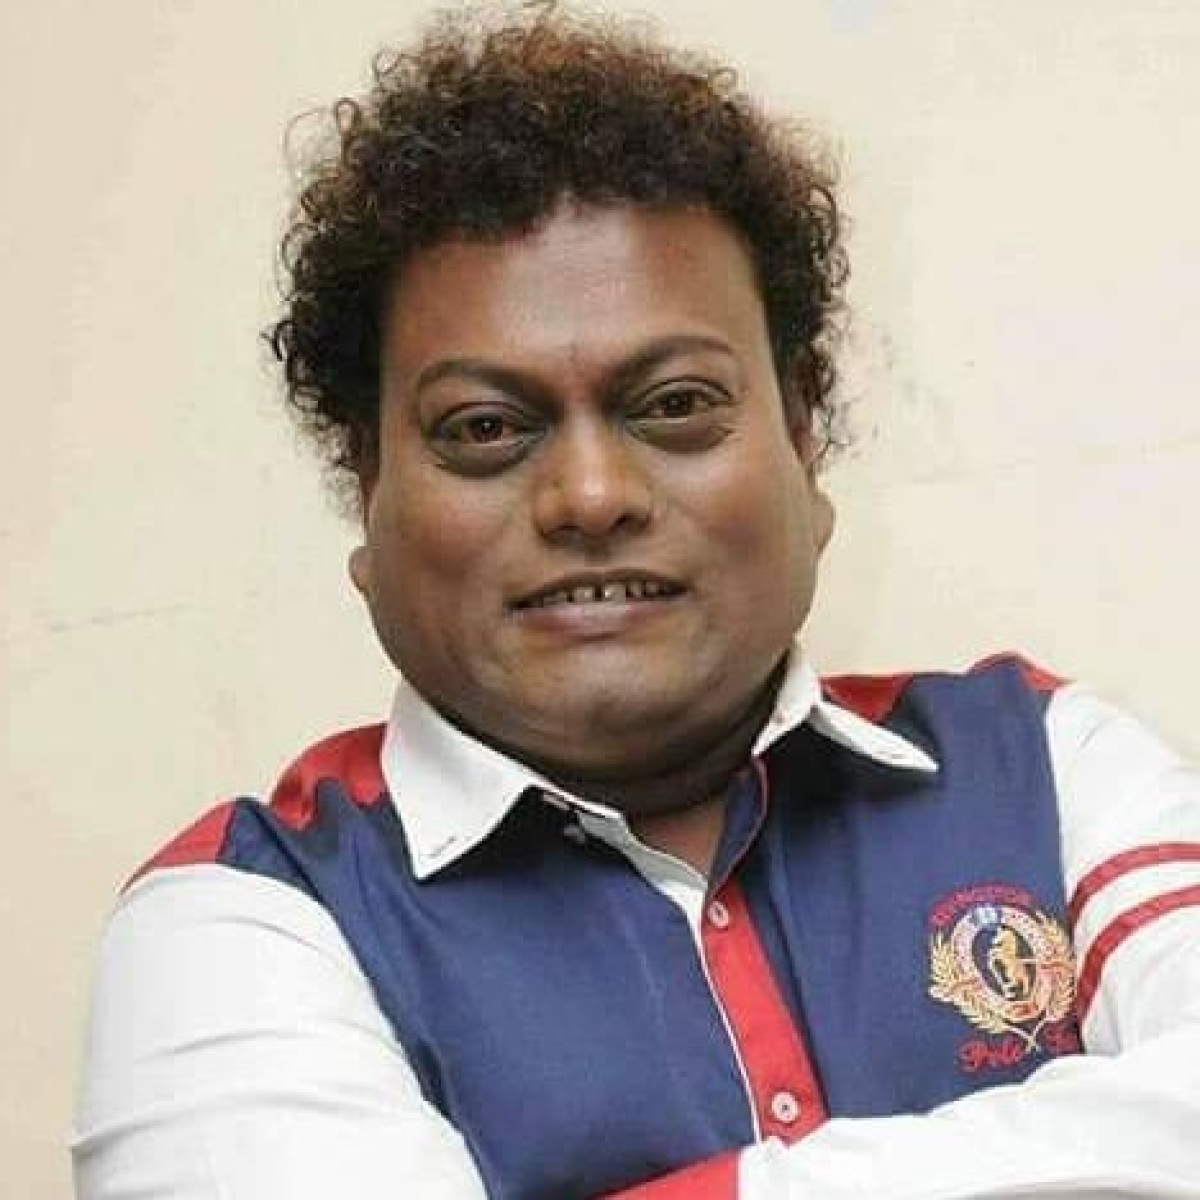 Kannada music director breaks down while explaining 'horrible experience' to get an oxygen cylinder